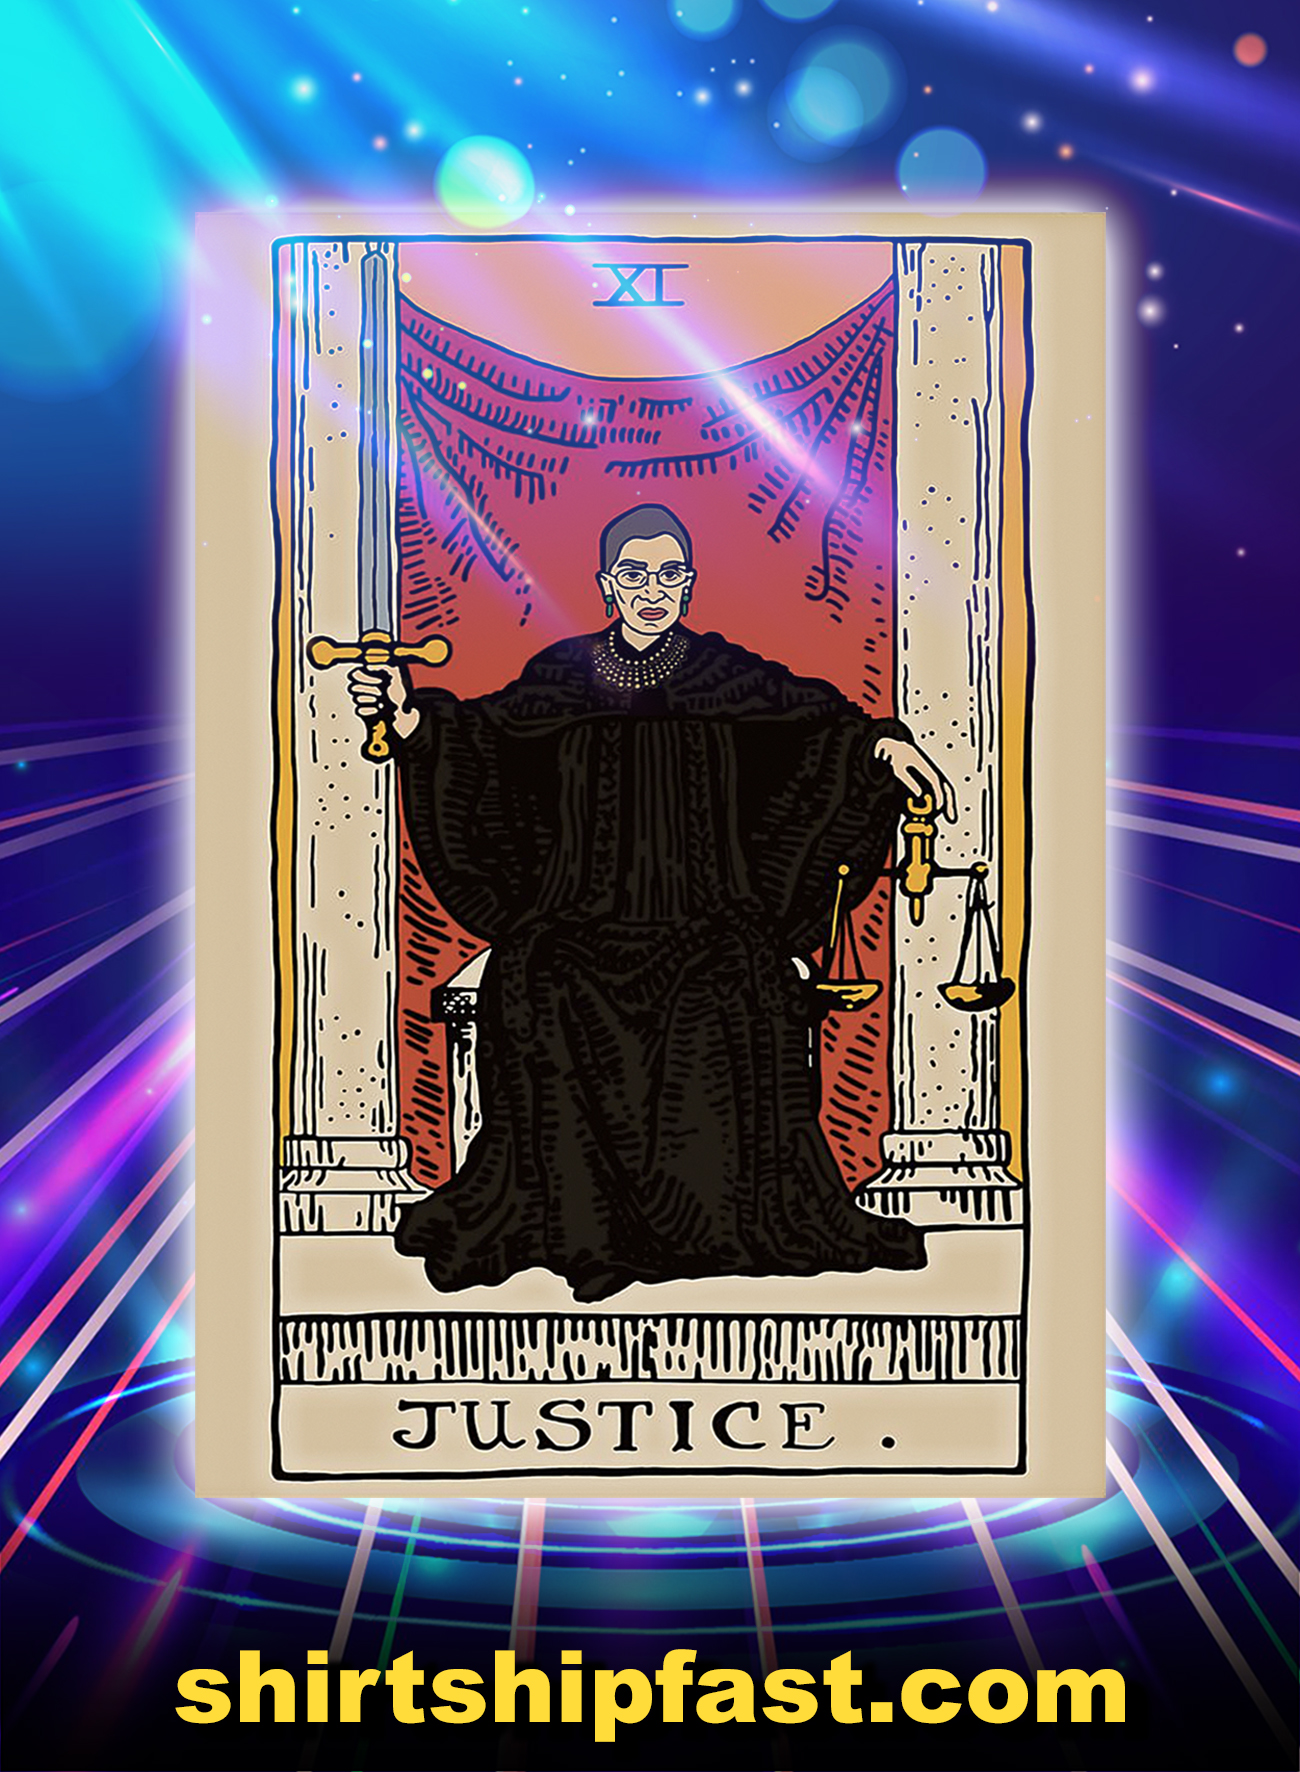 Card carot RBG justice poster - A1